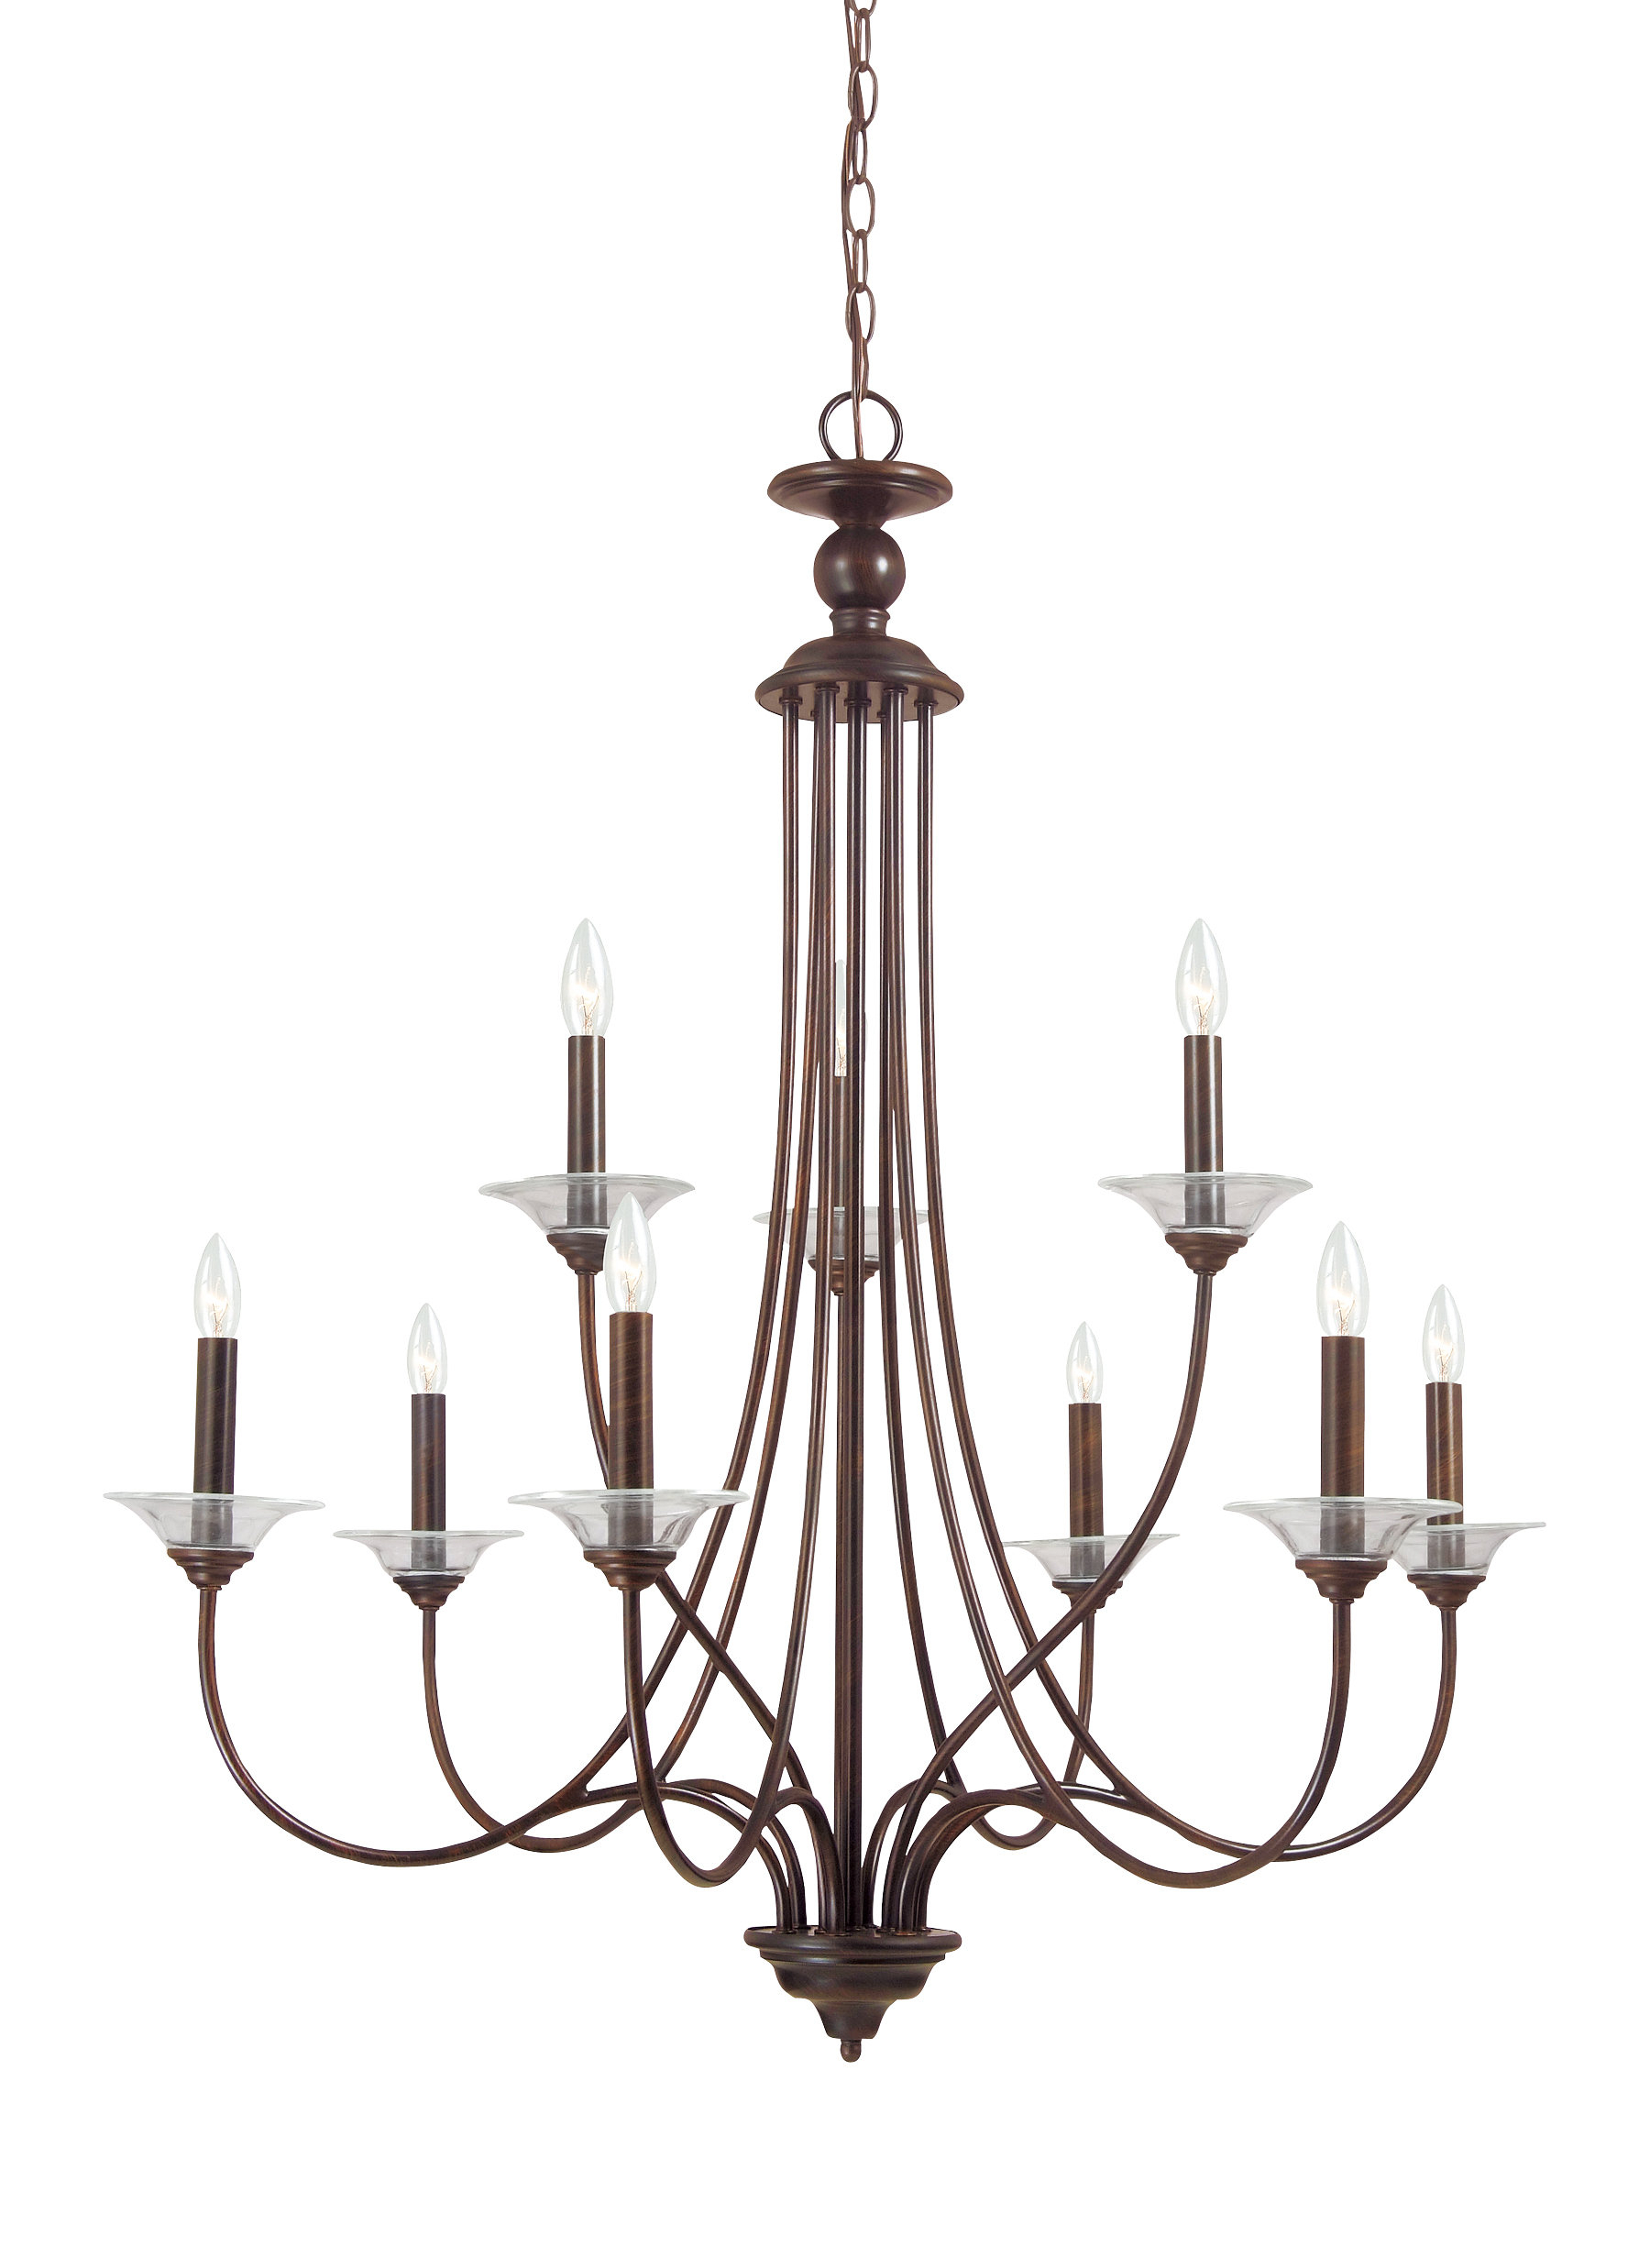 2019 Barbro 9 Light Chandelier Throughout Watford 9 Light Candle Style Chandeliers (View 1 of 20)